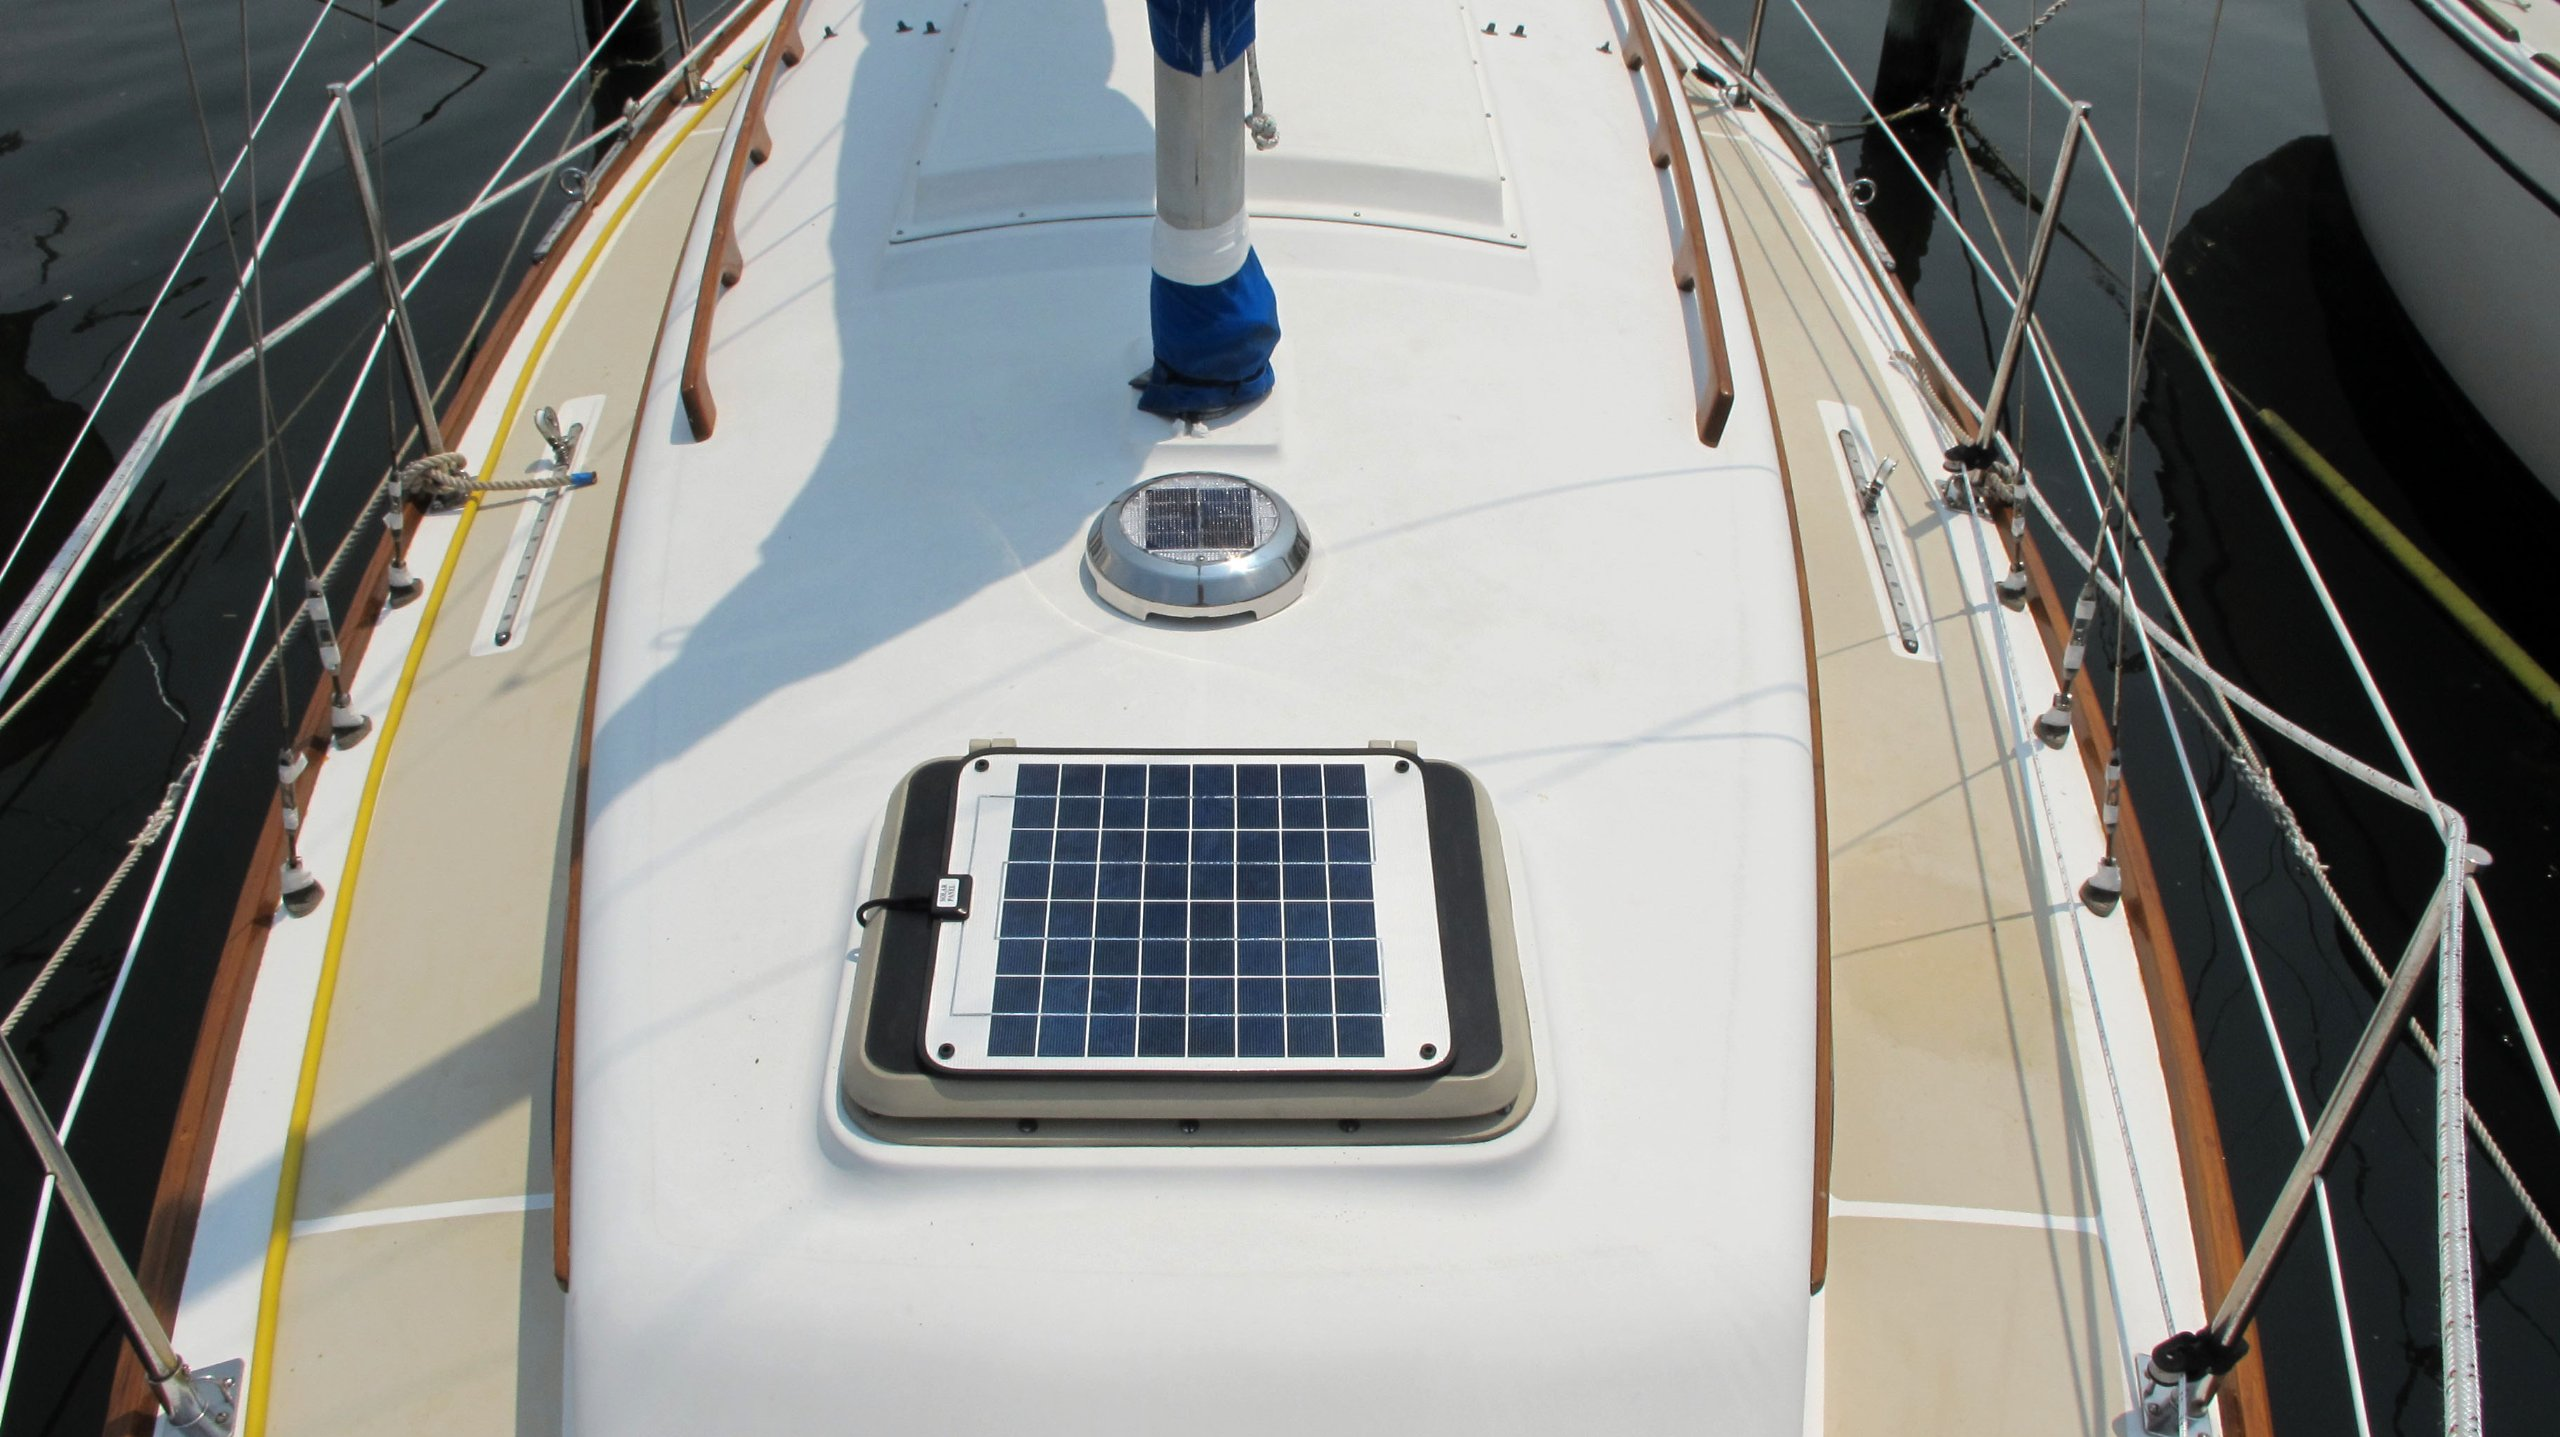 NOW 20 Watt 1.0 Amp - Solar Battery Charger - Boat, RV, Marine & Trolling Motor Solar Panel - 12 Volt - No experience Plug & Play Design. Dimensions 14.1'' L x 15.7'' W x 1/4'' Thick. 10' cable. by DuraVolt (Image #8)